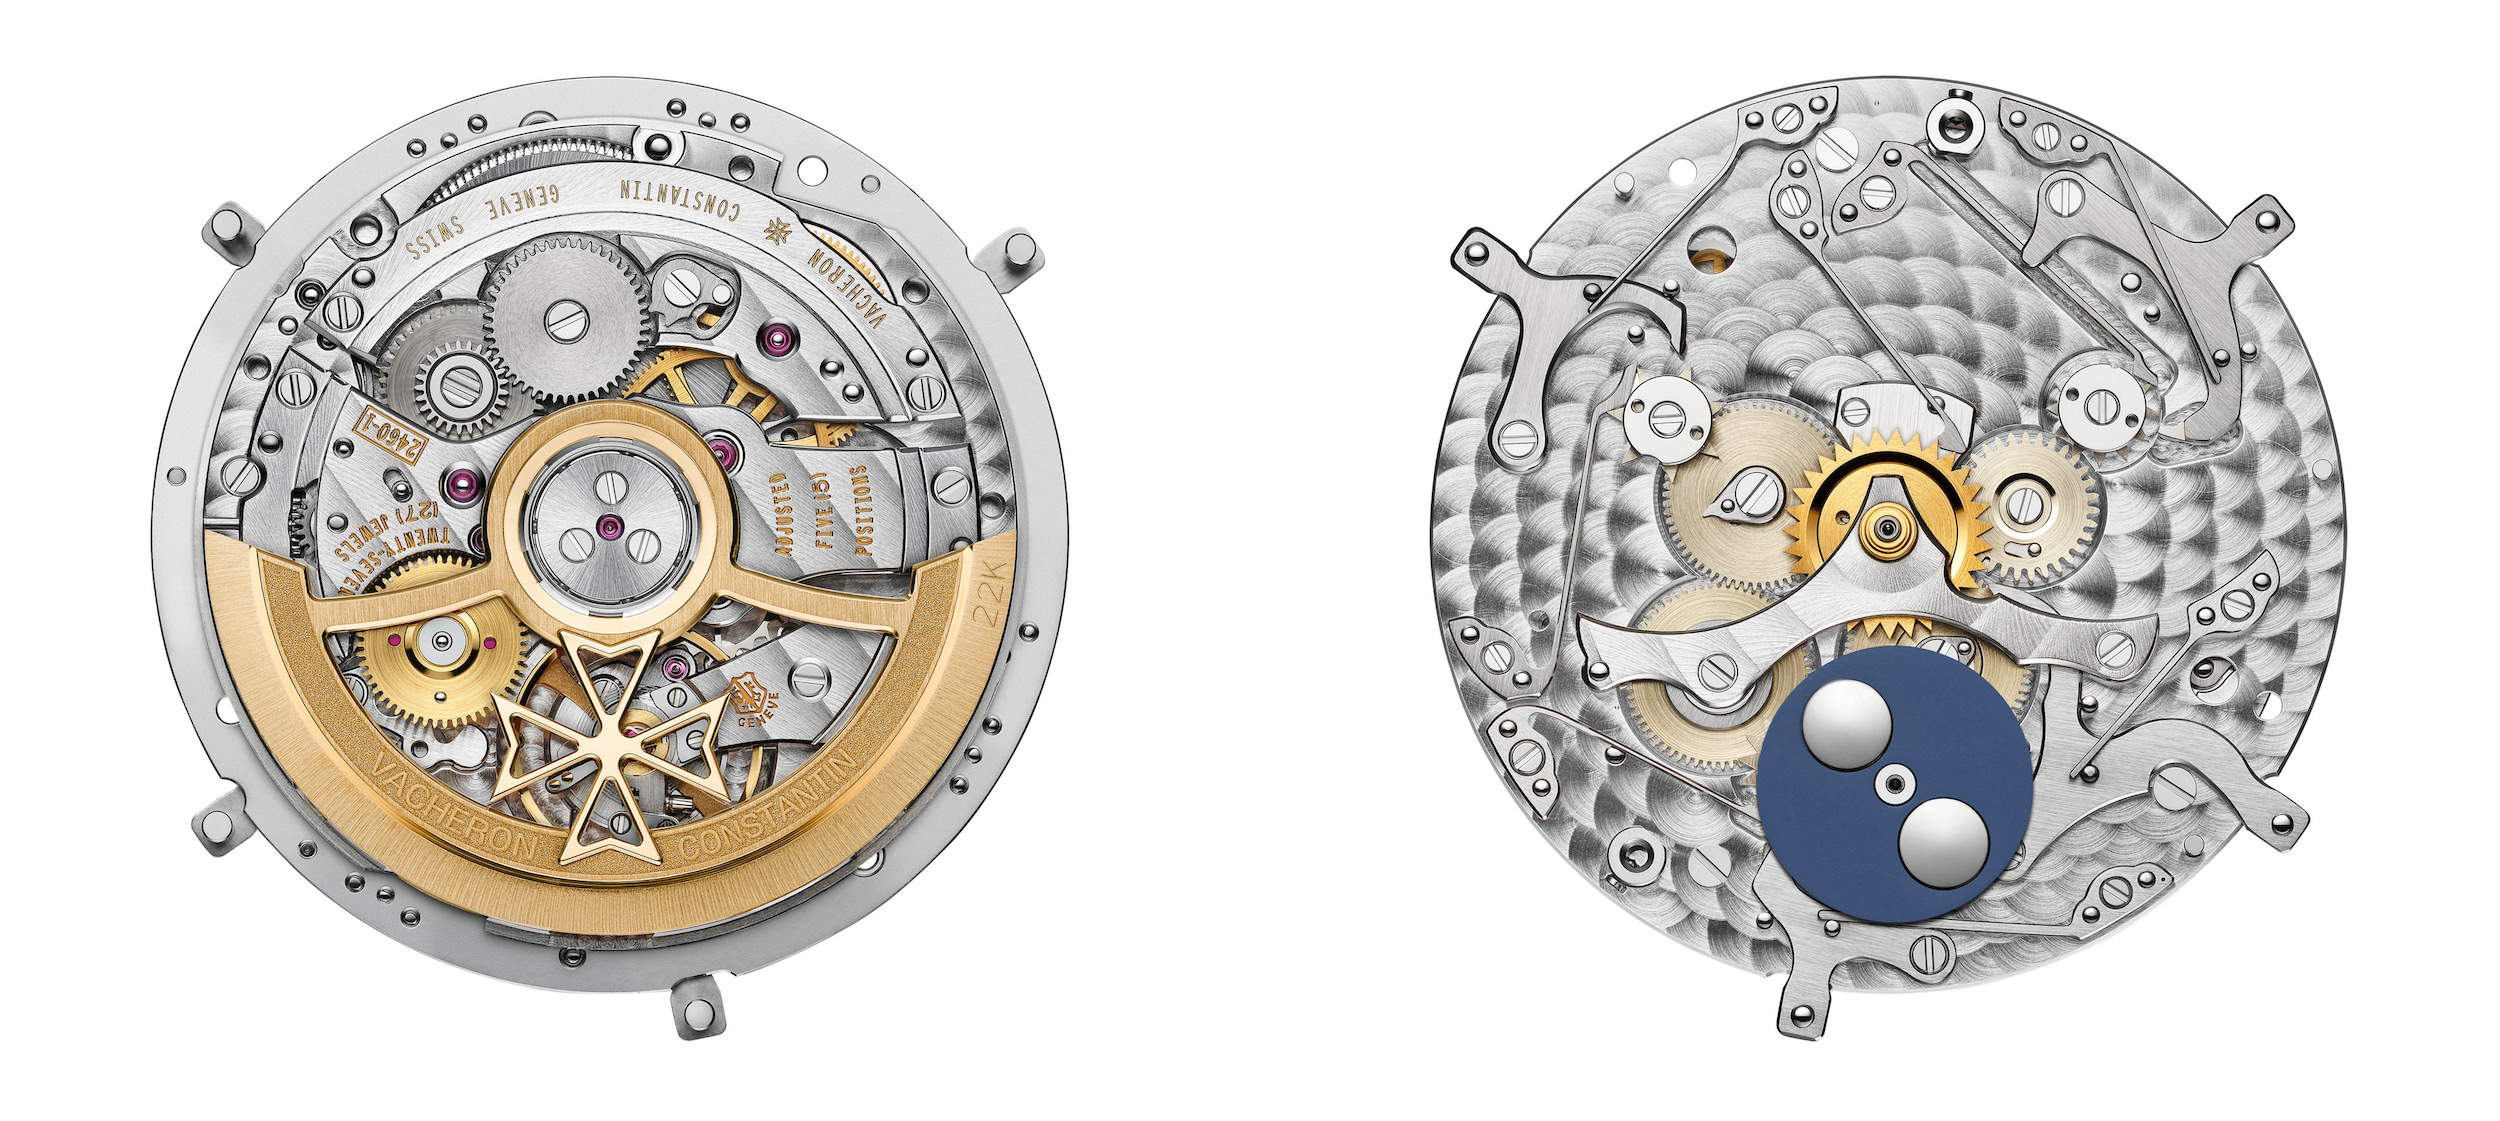 vacheron constantin fiftysix mouvement